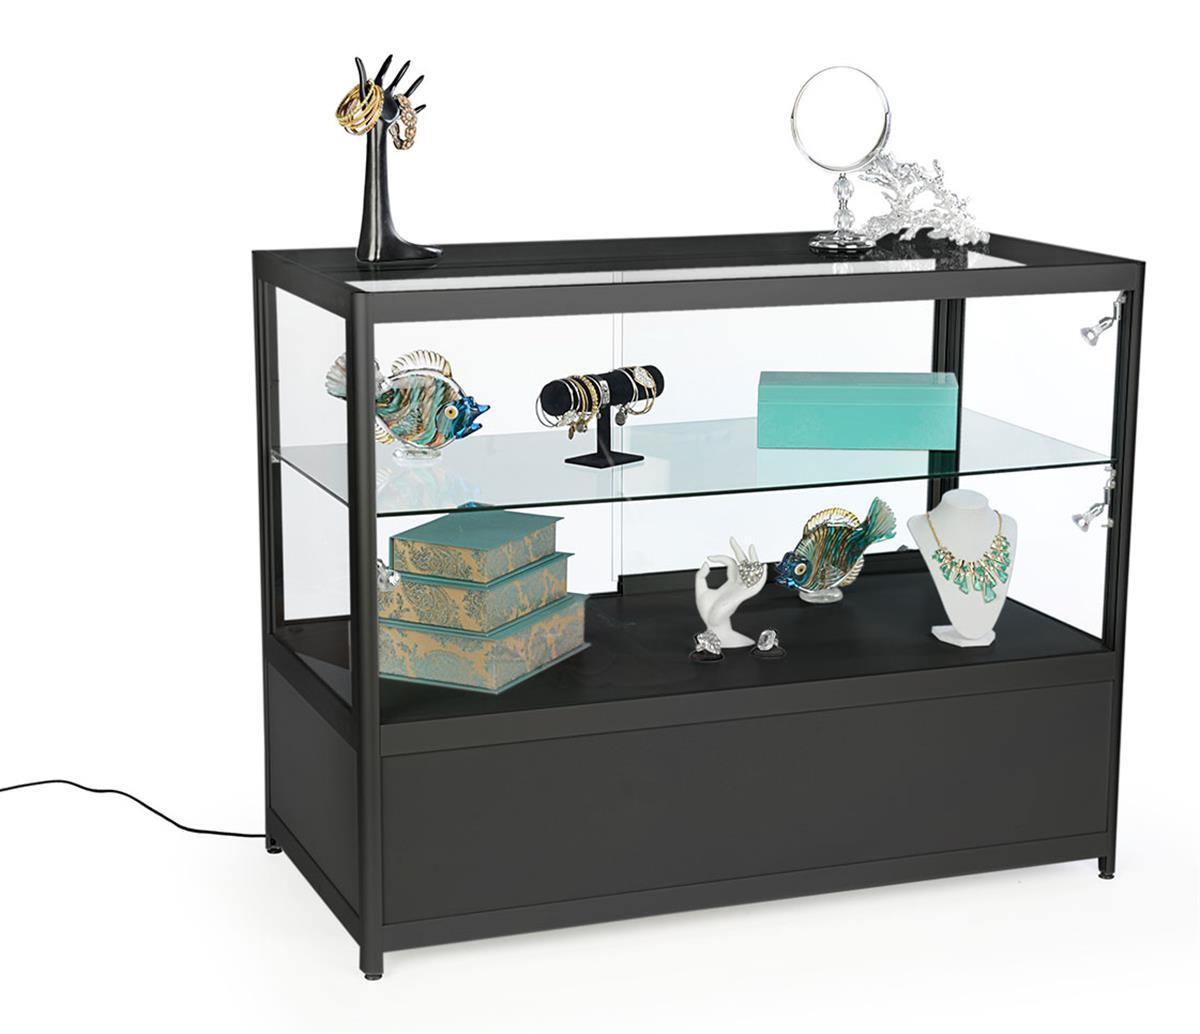 Locking Display Cabinets  Adjustable Side Lights